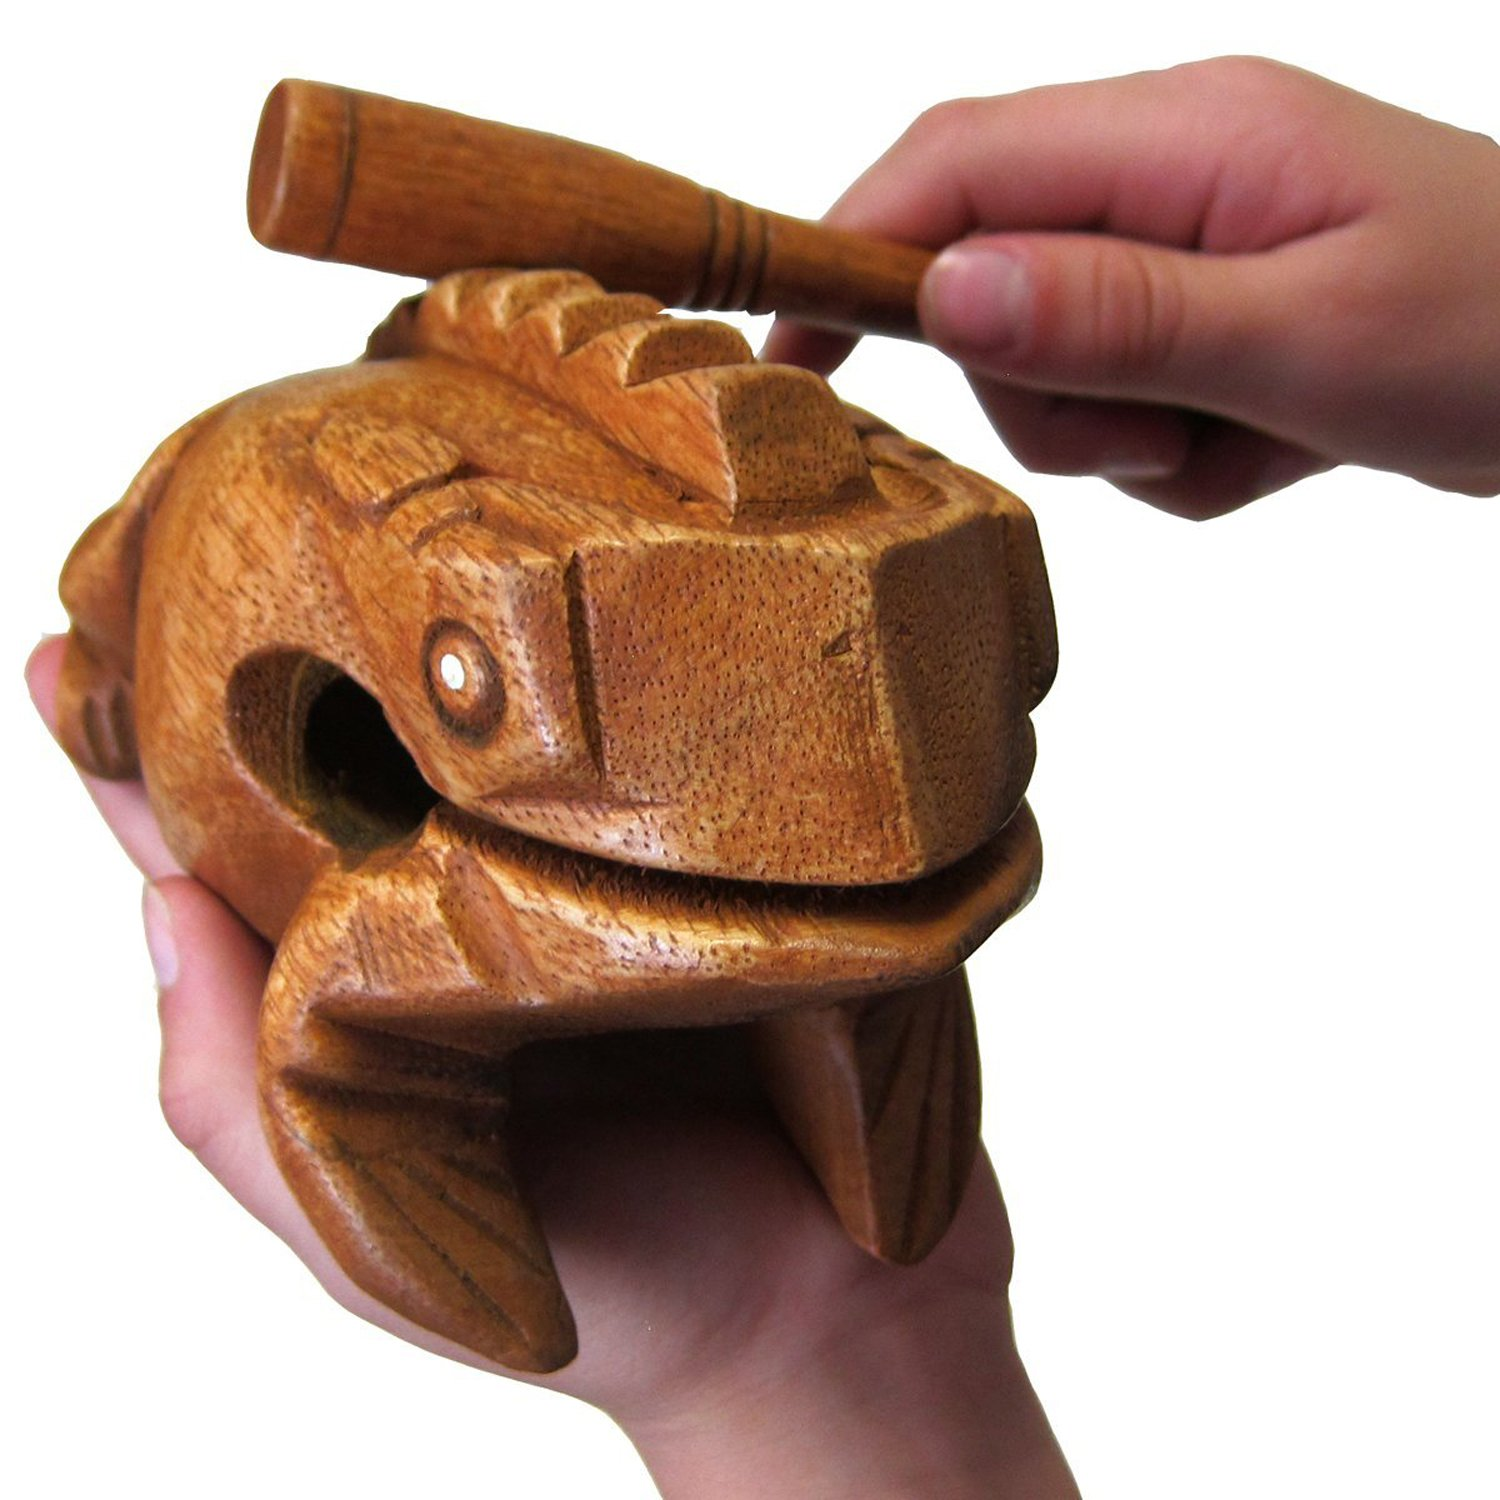 "Deluxe Large 6"" Wood Frog Guiro Rasp - Musical Instrument Tone Block - by World Percussion USA"